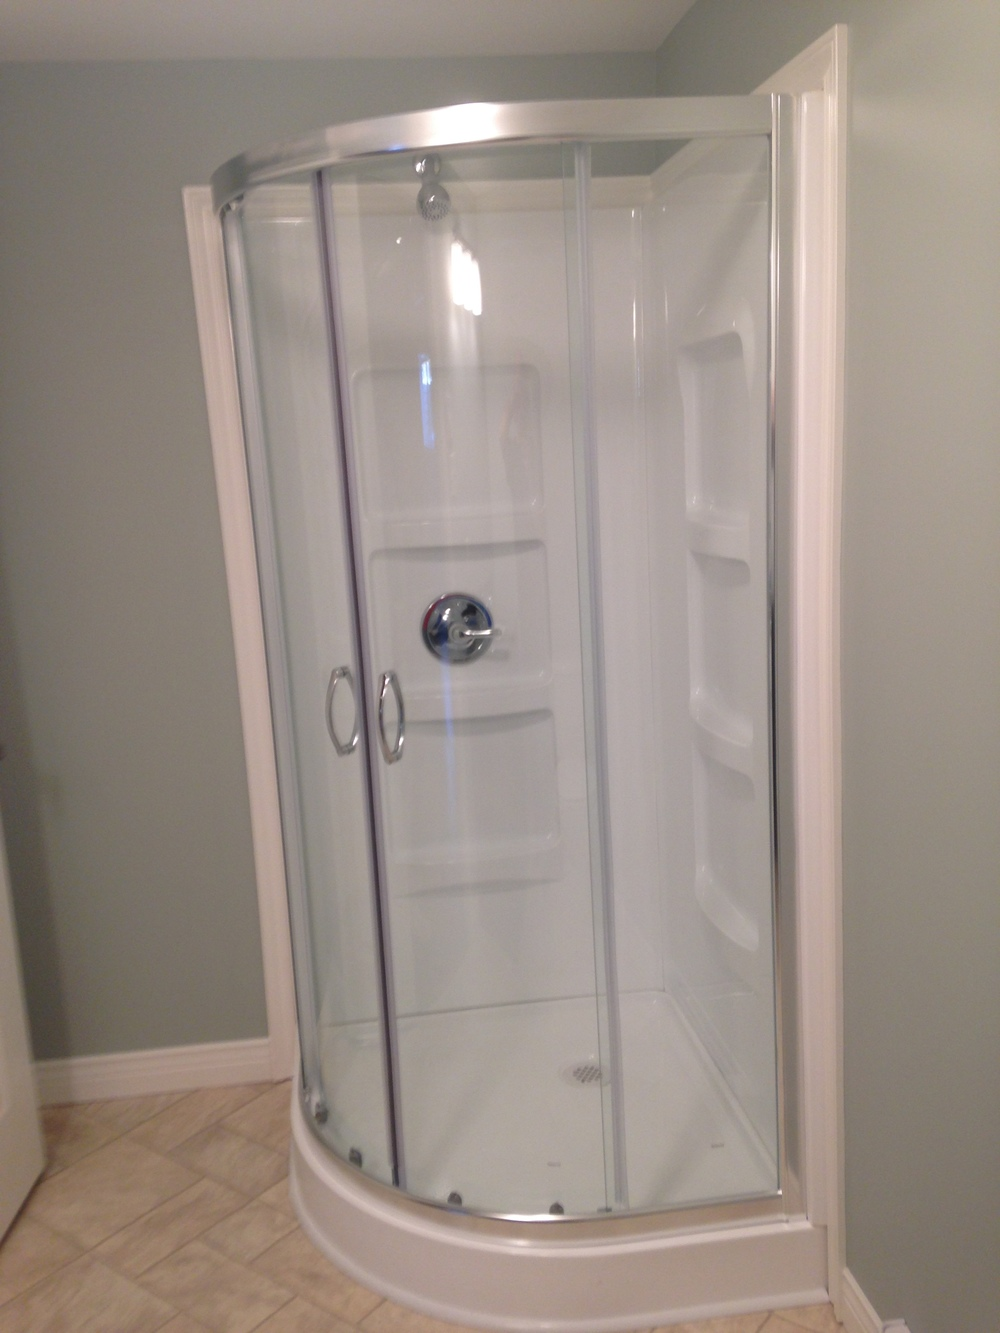 Acrylic shower in 3/4 bath